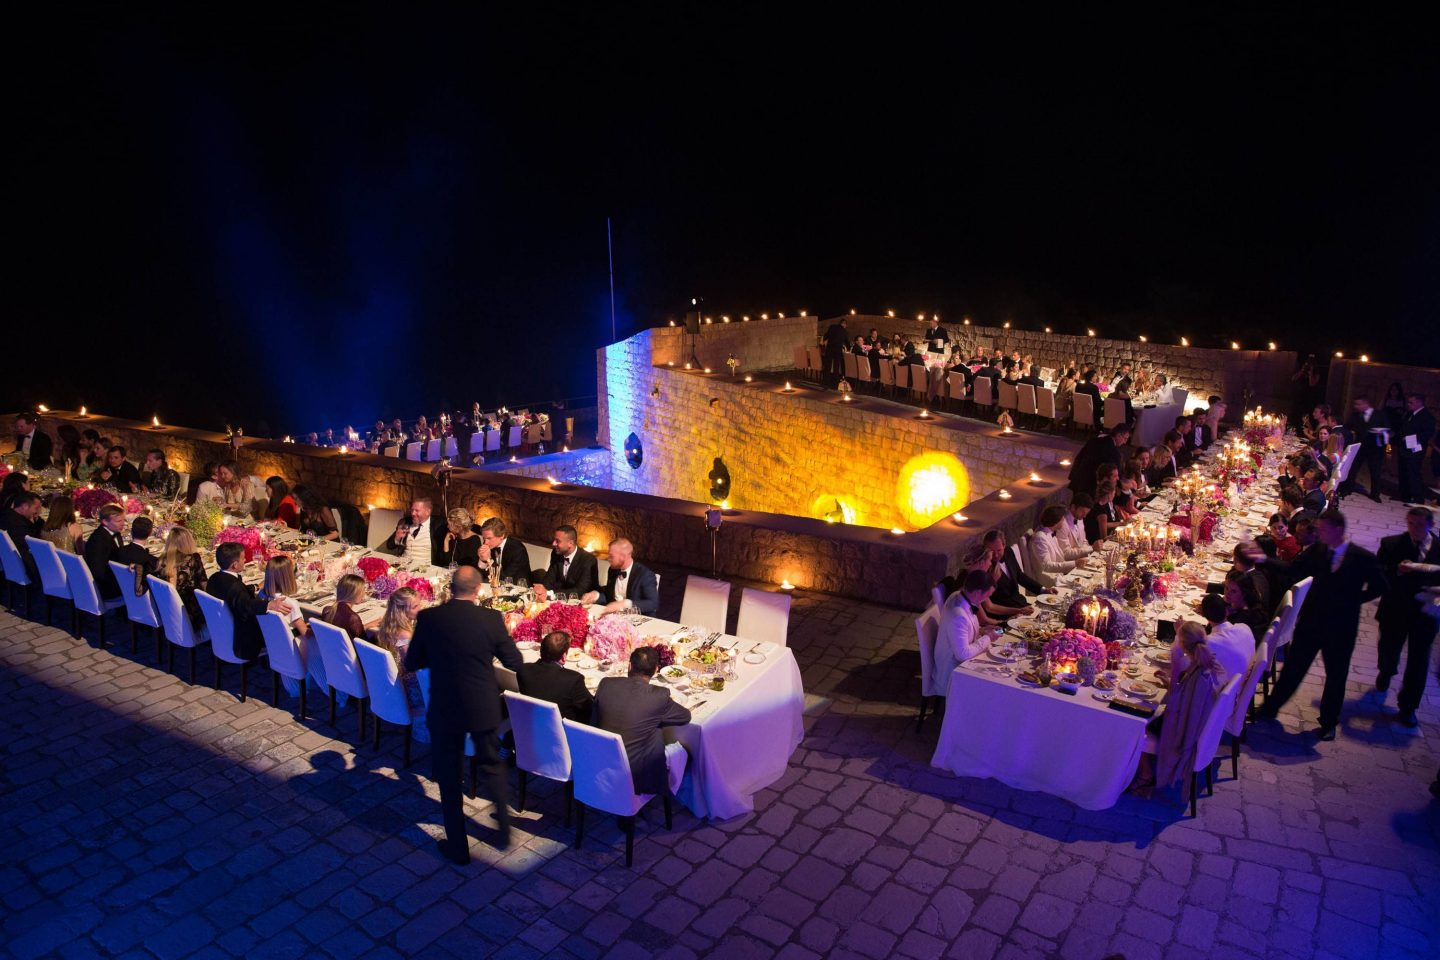 Guests during evening dinner party at Fort Lovrijenac at this Dubrovnik wedding in Croatia | Photo by Robert Fairer